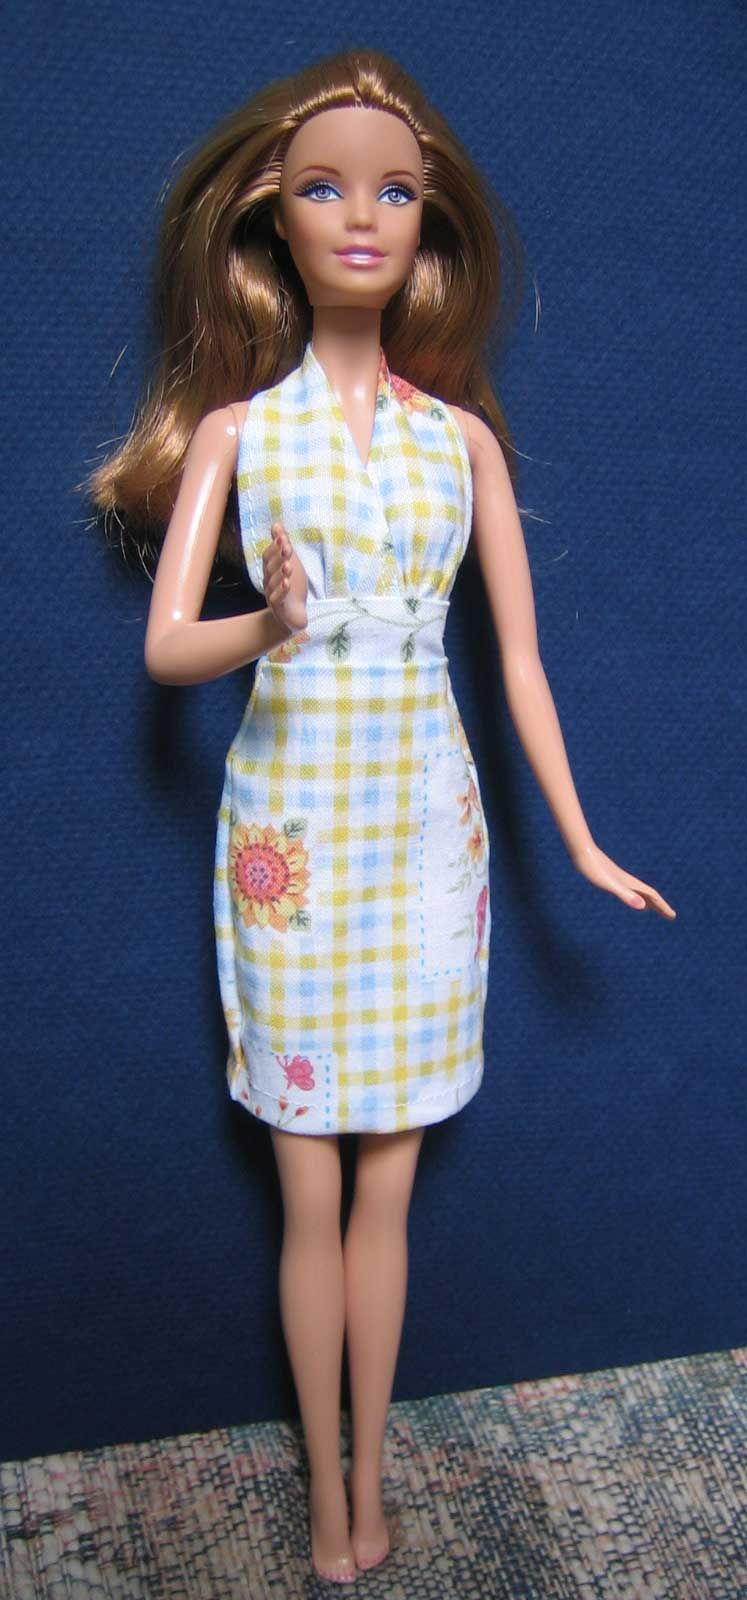 barbie clothes for the newest barbie body type | Craft Ideas ...